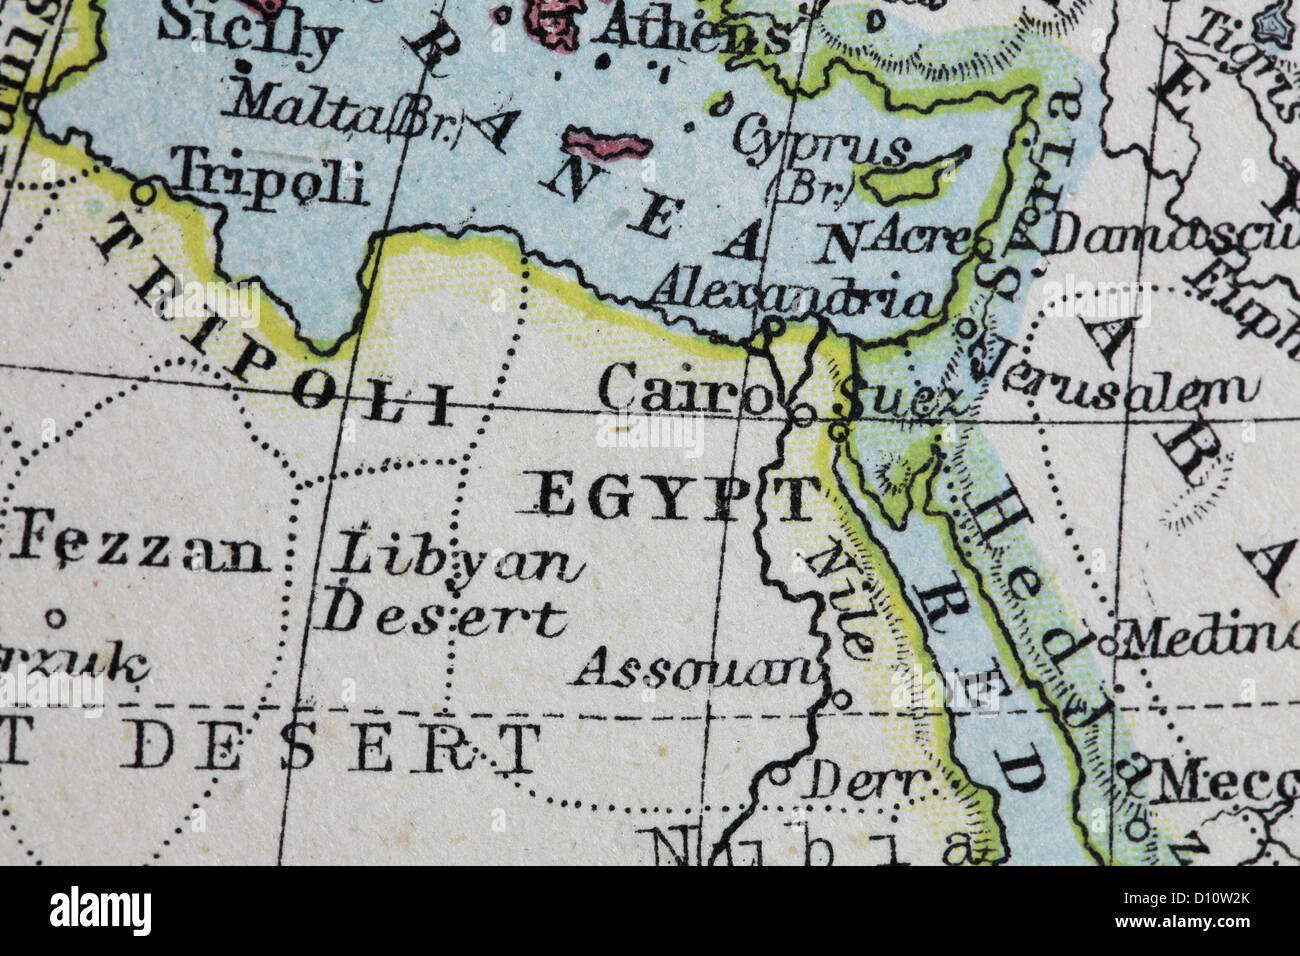 Suez C Stock Photos & Suez C Stock Images - Alamy Suez C Map on